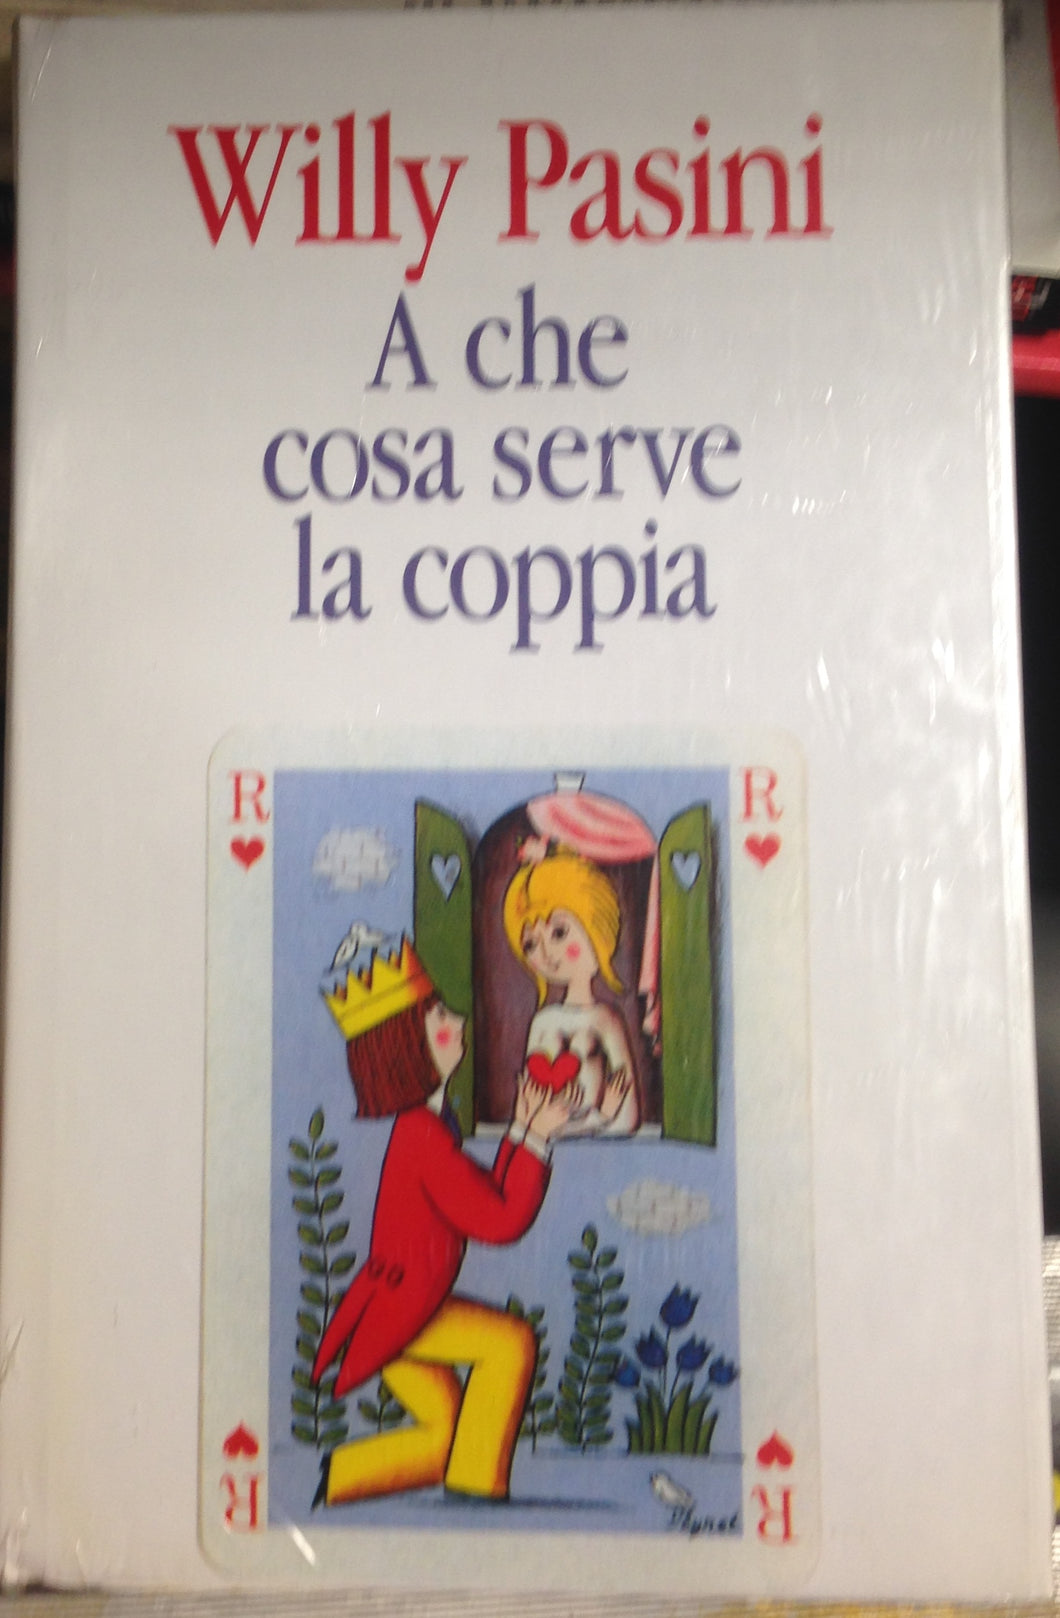 A che cosa serve la coppia / Willy Pasini